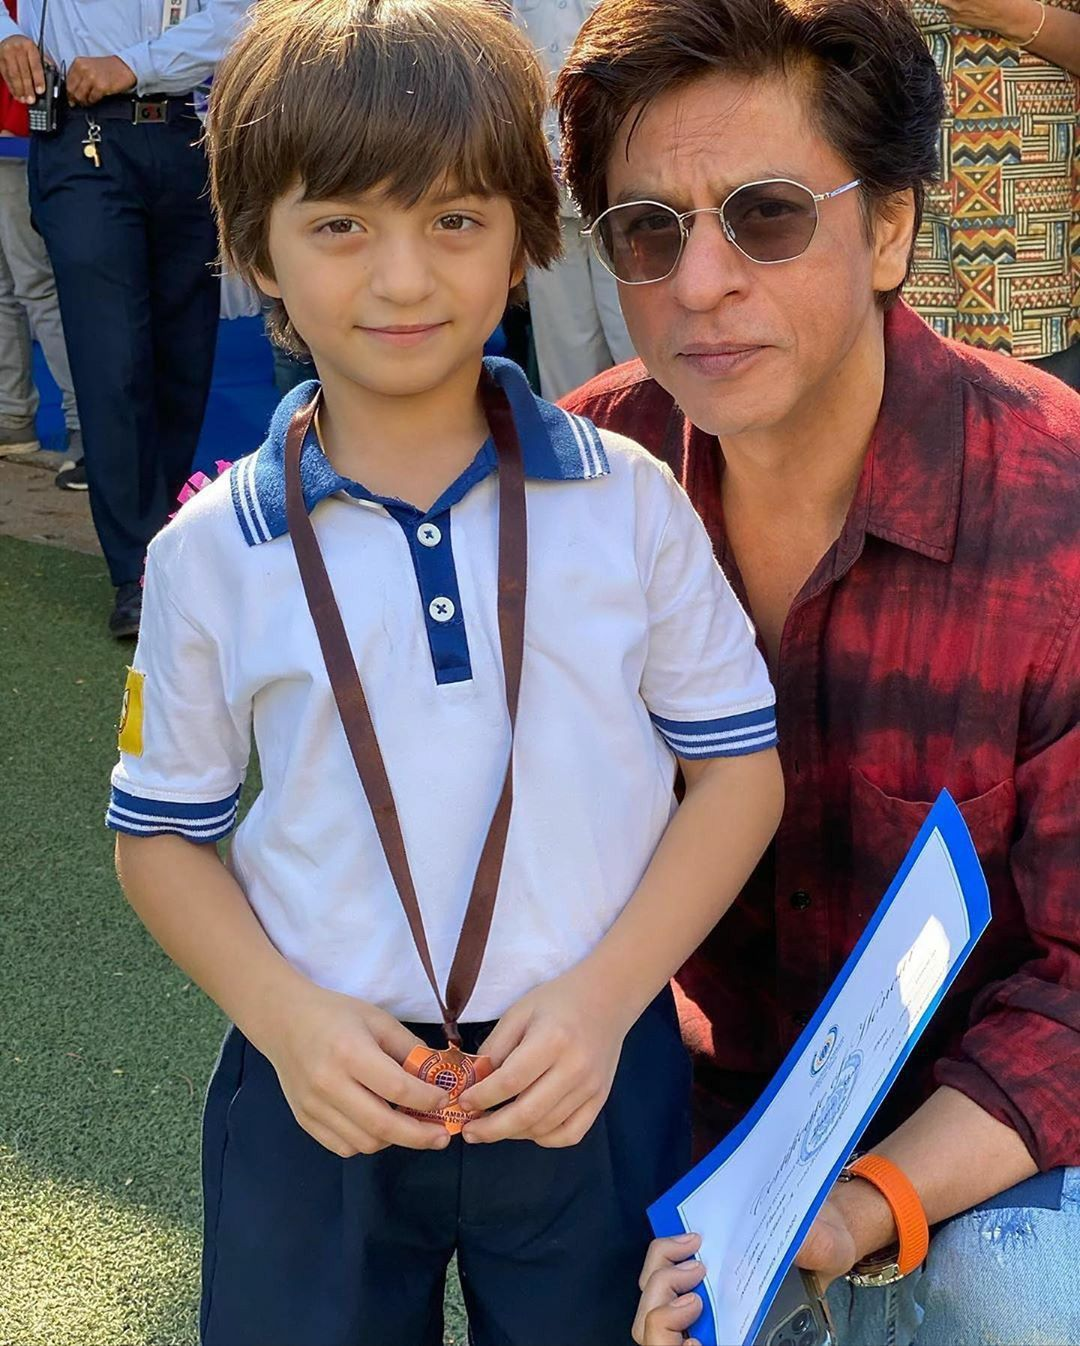 Pin by ꌚꍏꀘꌚꀍꀤ 🐰^_^ on SRK in 2020 Abram khan, Bollywood